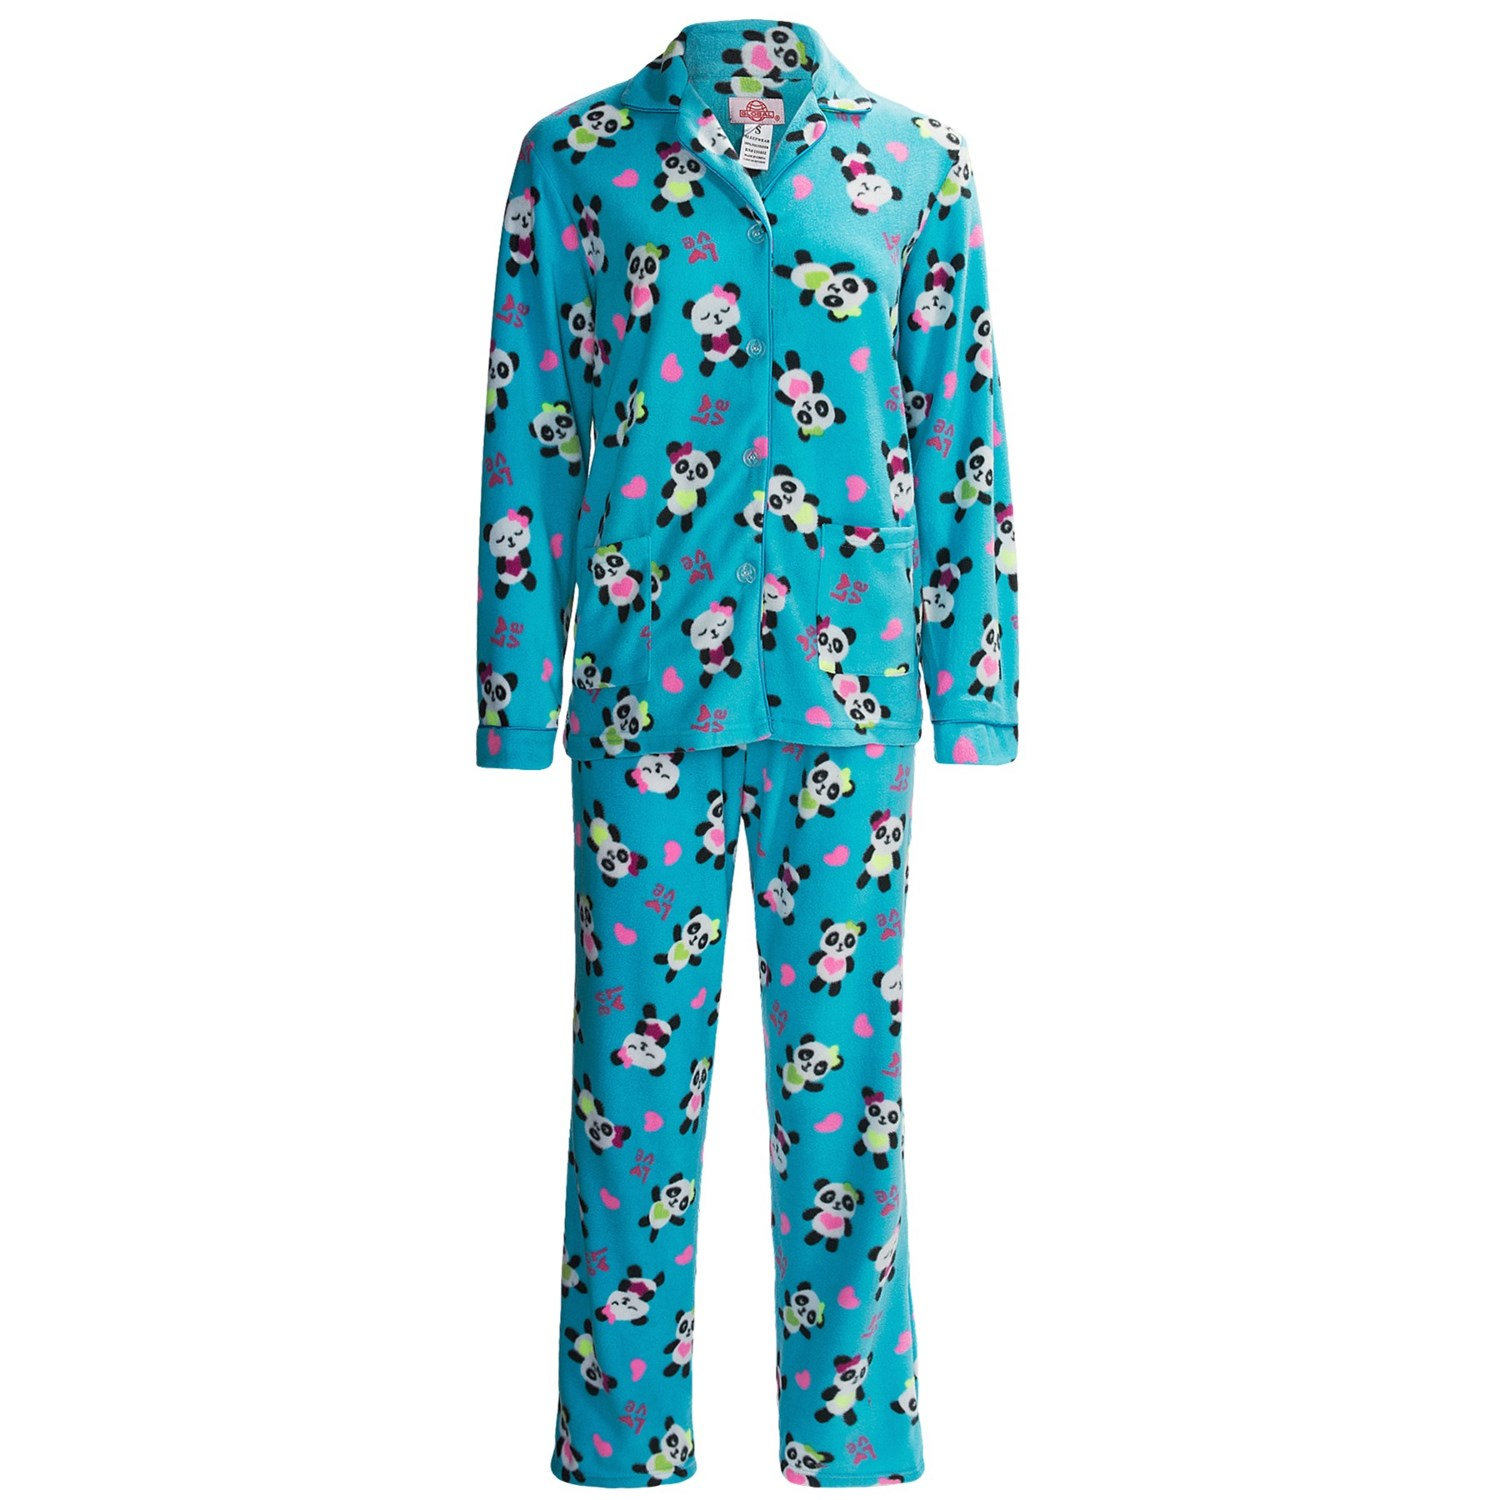 This cozy polar fleece pajama set will keep you warm and toasty on cold evenings. The black V neck shirt features mint stitching on the neckline and sleeves. The mint pants feature an adorable puppy print in addition to a covered elastic waistband with adjustable drawstring.